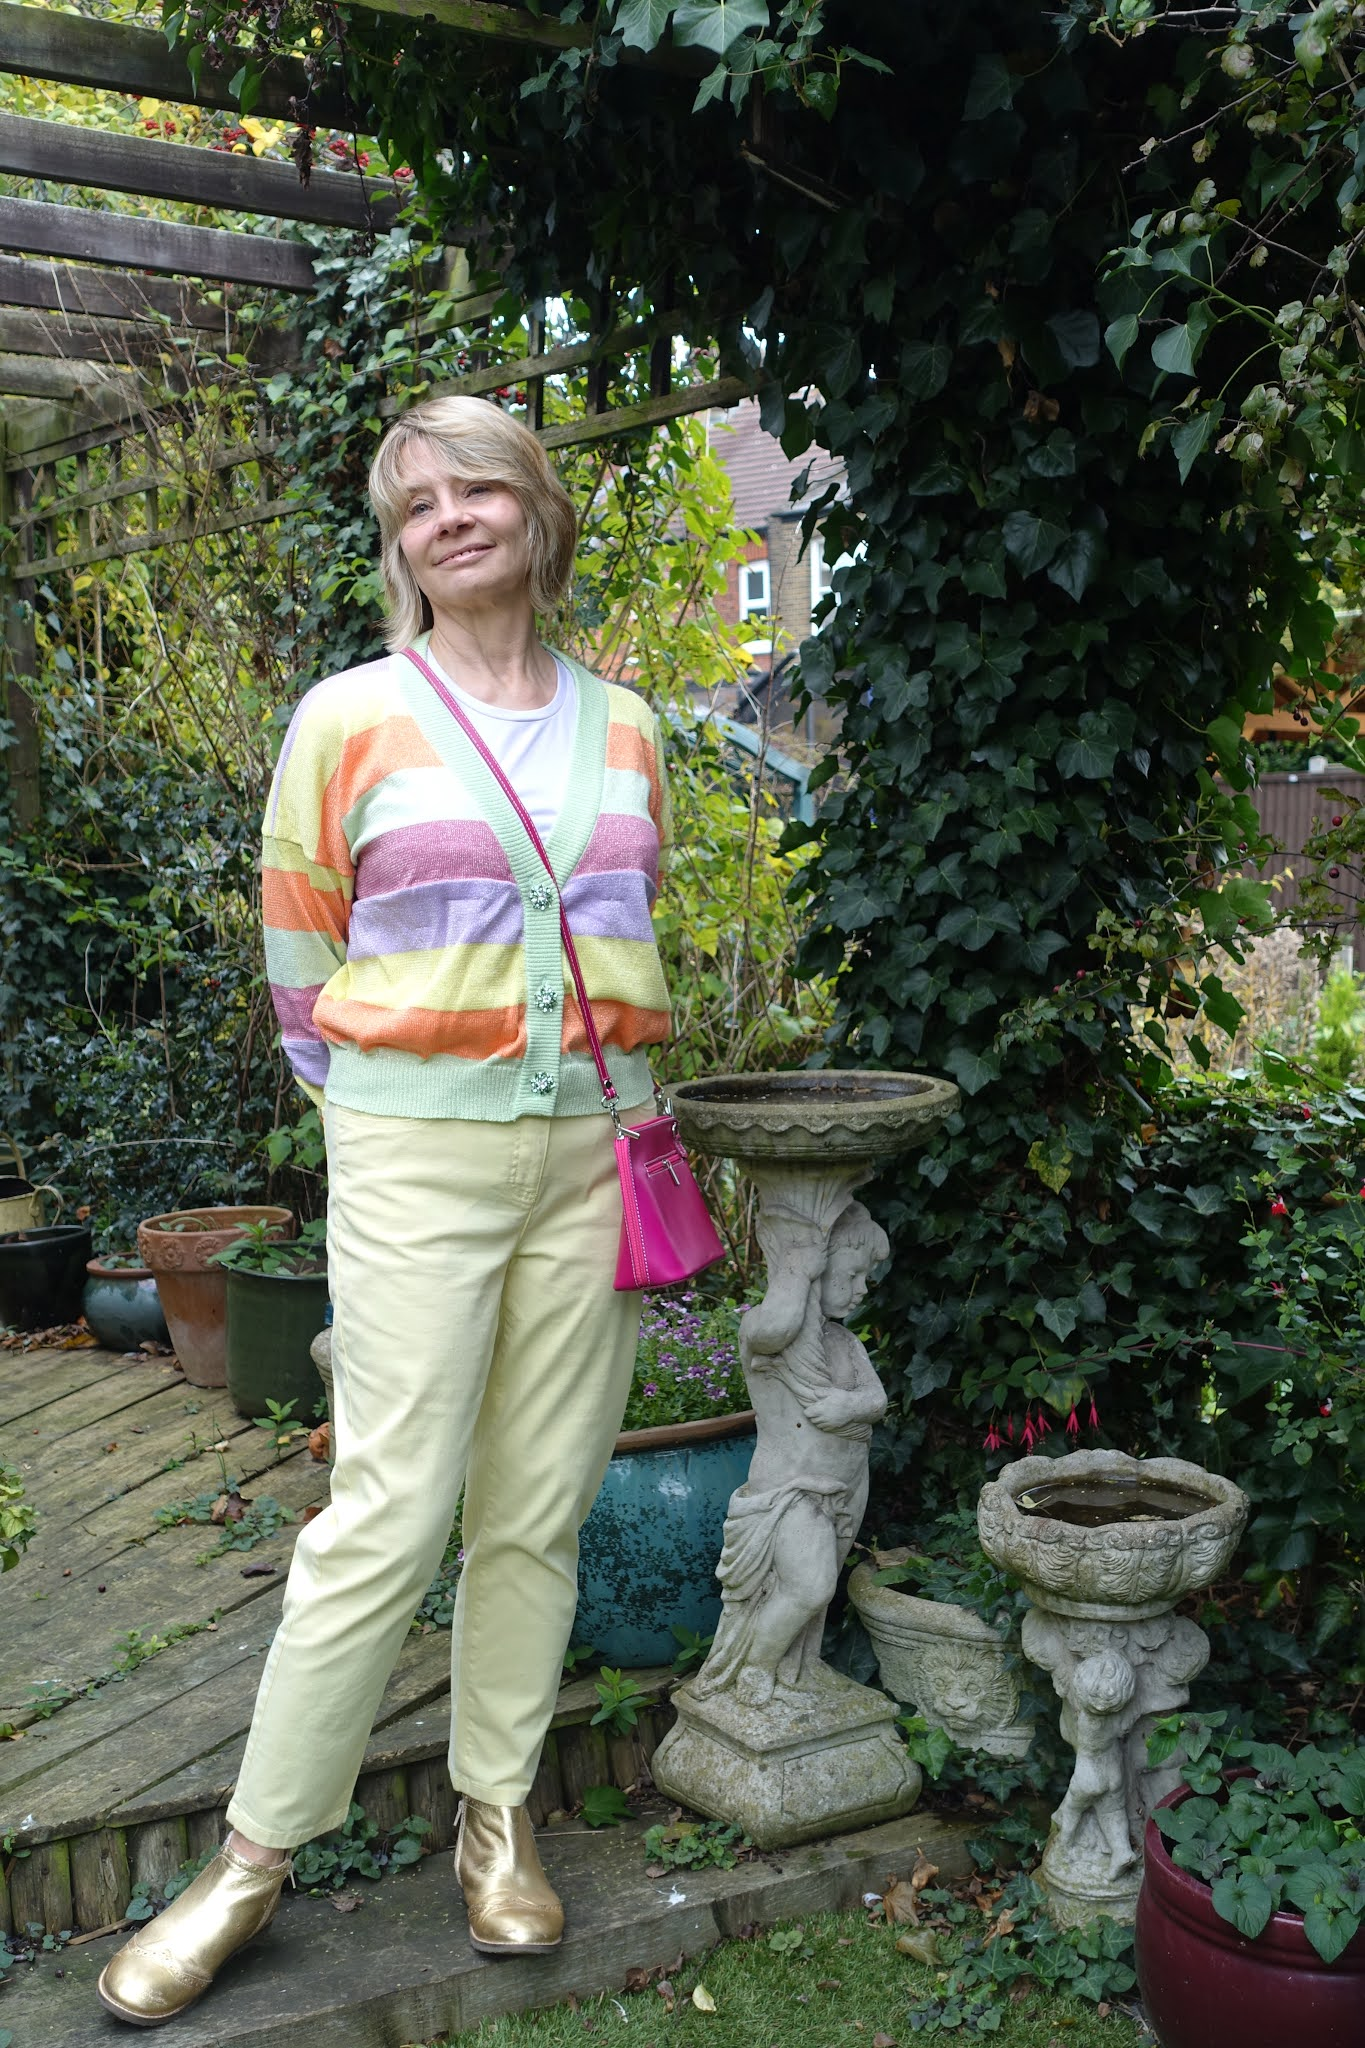 Shades of pale green, pink, orange and yellow in this striking cardigan with jewel buttons creates a pastel colored outfit for winter, as worn by Is This Mutton blogger Gail Hanlon